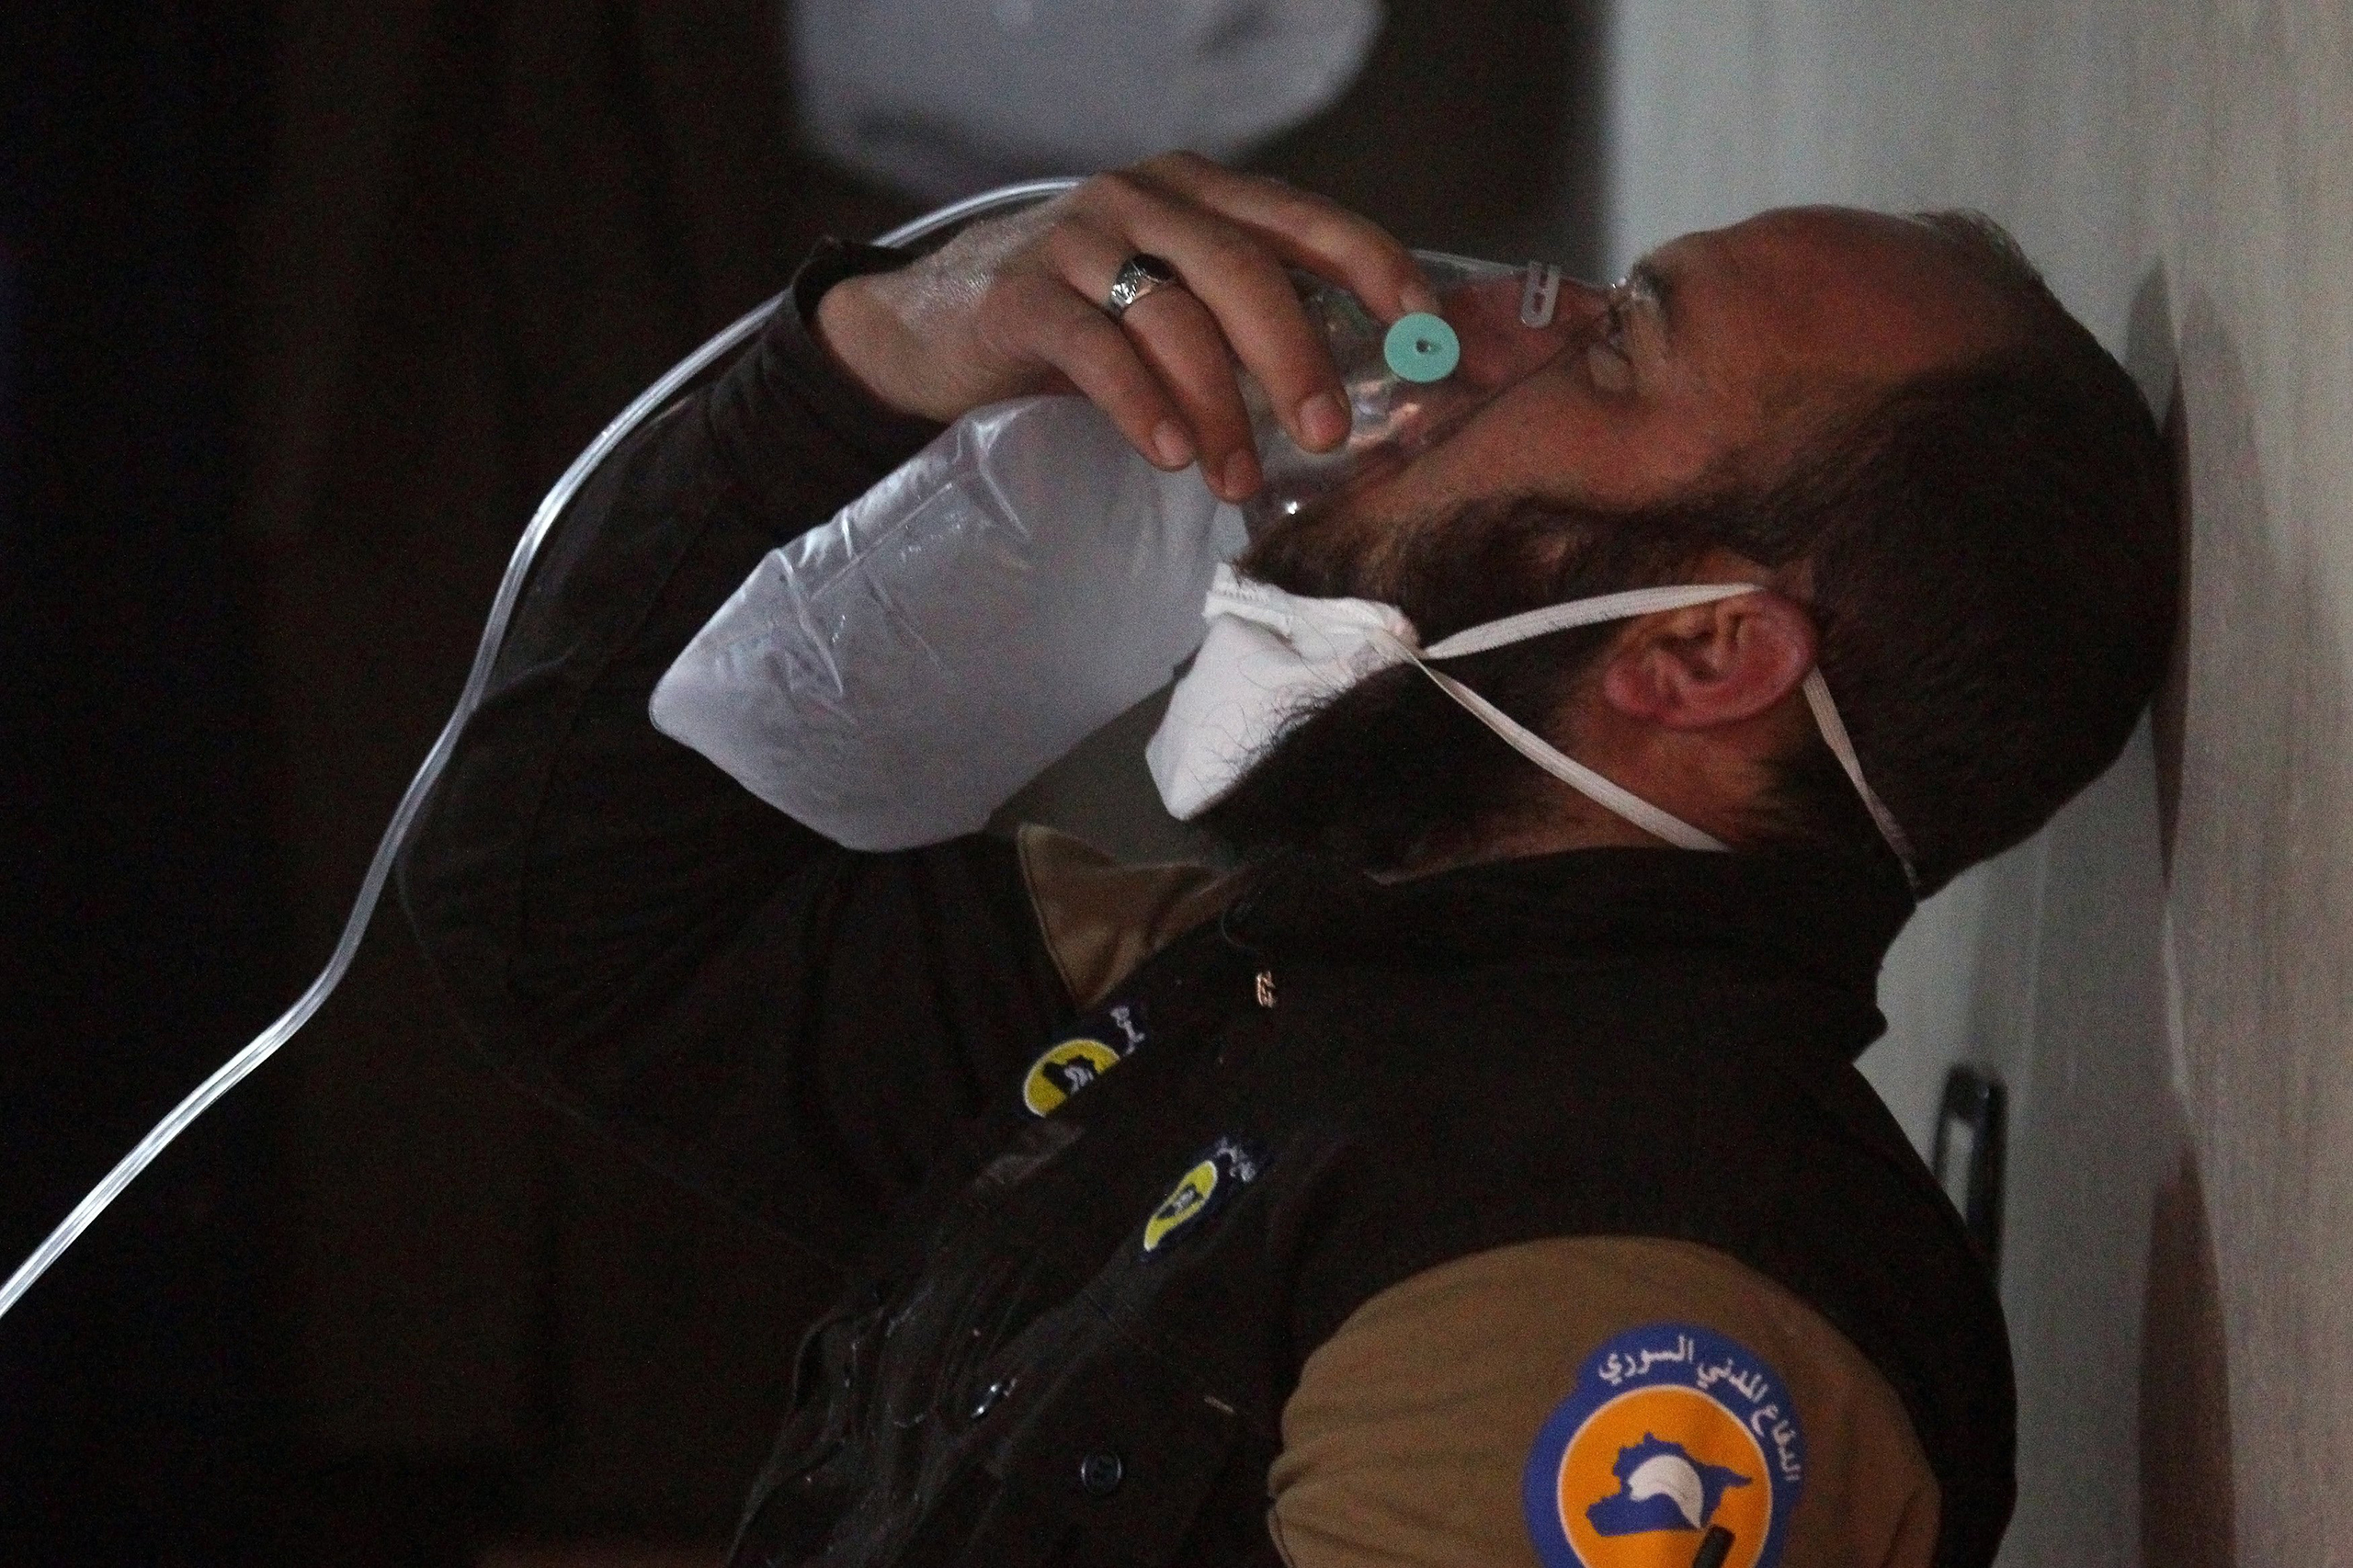 A civil defence member breathes through an oxygen mask after what rescue workers described as a suspected gas attack in the town of Khan Sheikhoun, in rebel-held Idlib, Syria, on April 4, 2017.